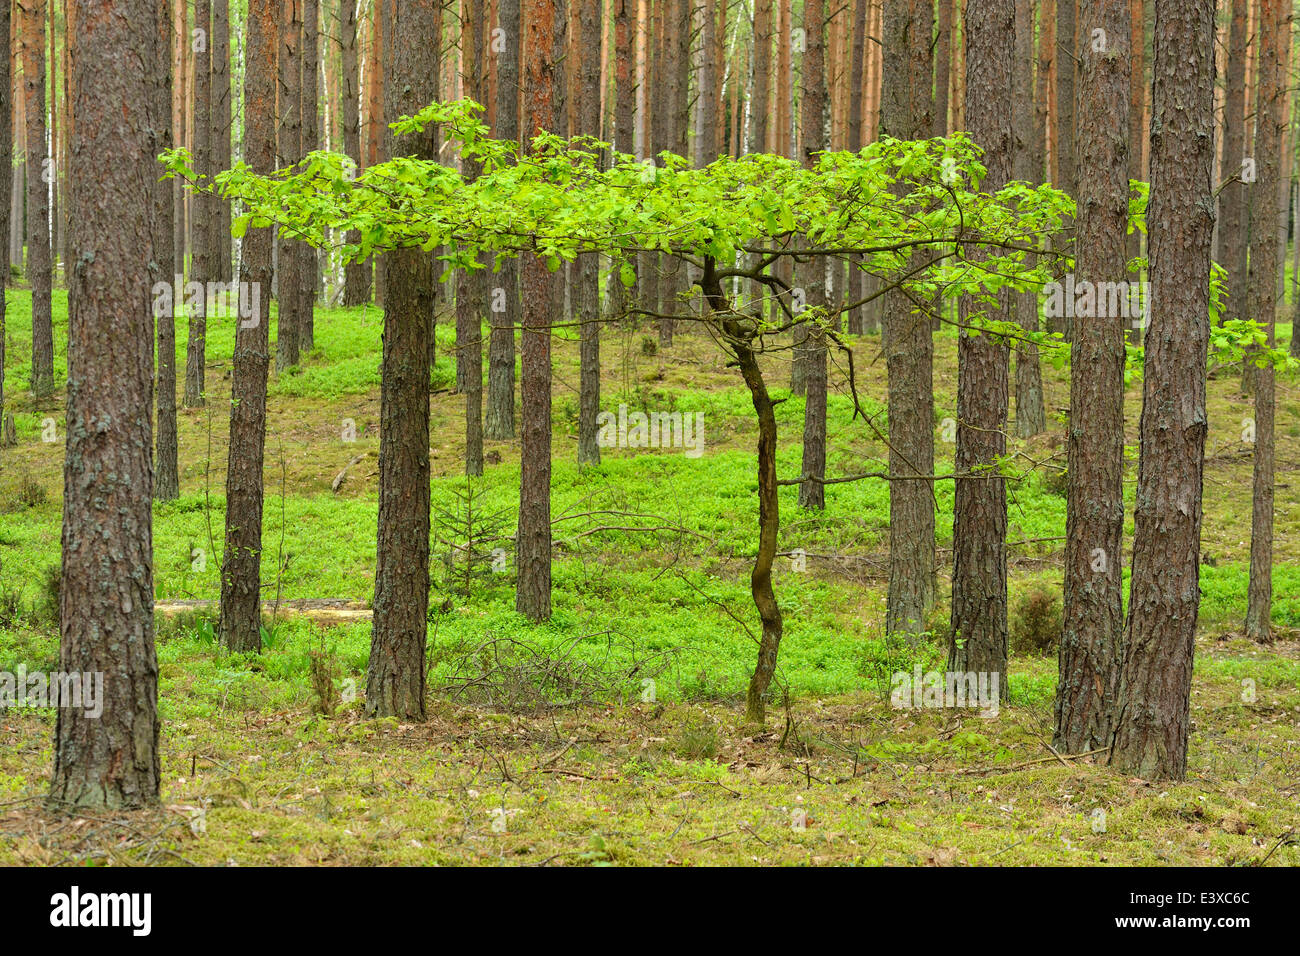 Young Oak tree (Quercus), growing in between Scots Pines (Pinus sylvestris) in a pine forest, Biebrza National Park, - Stock Image